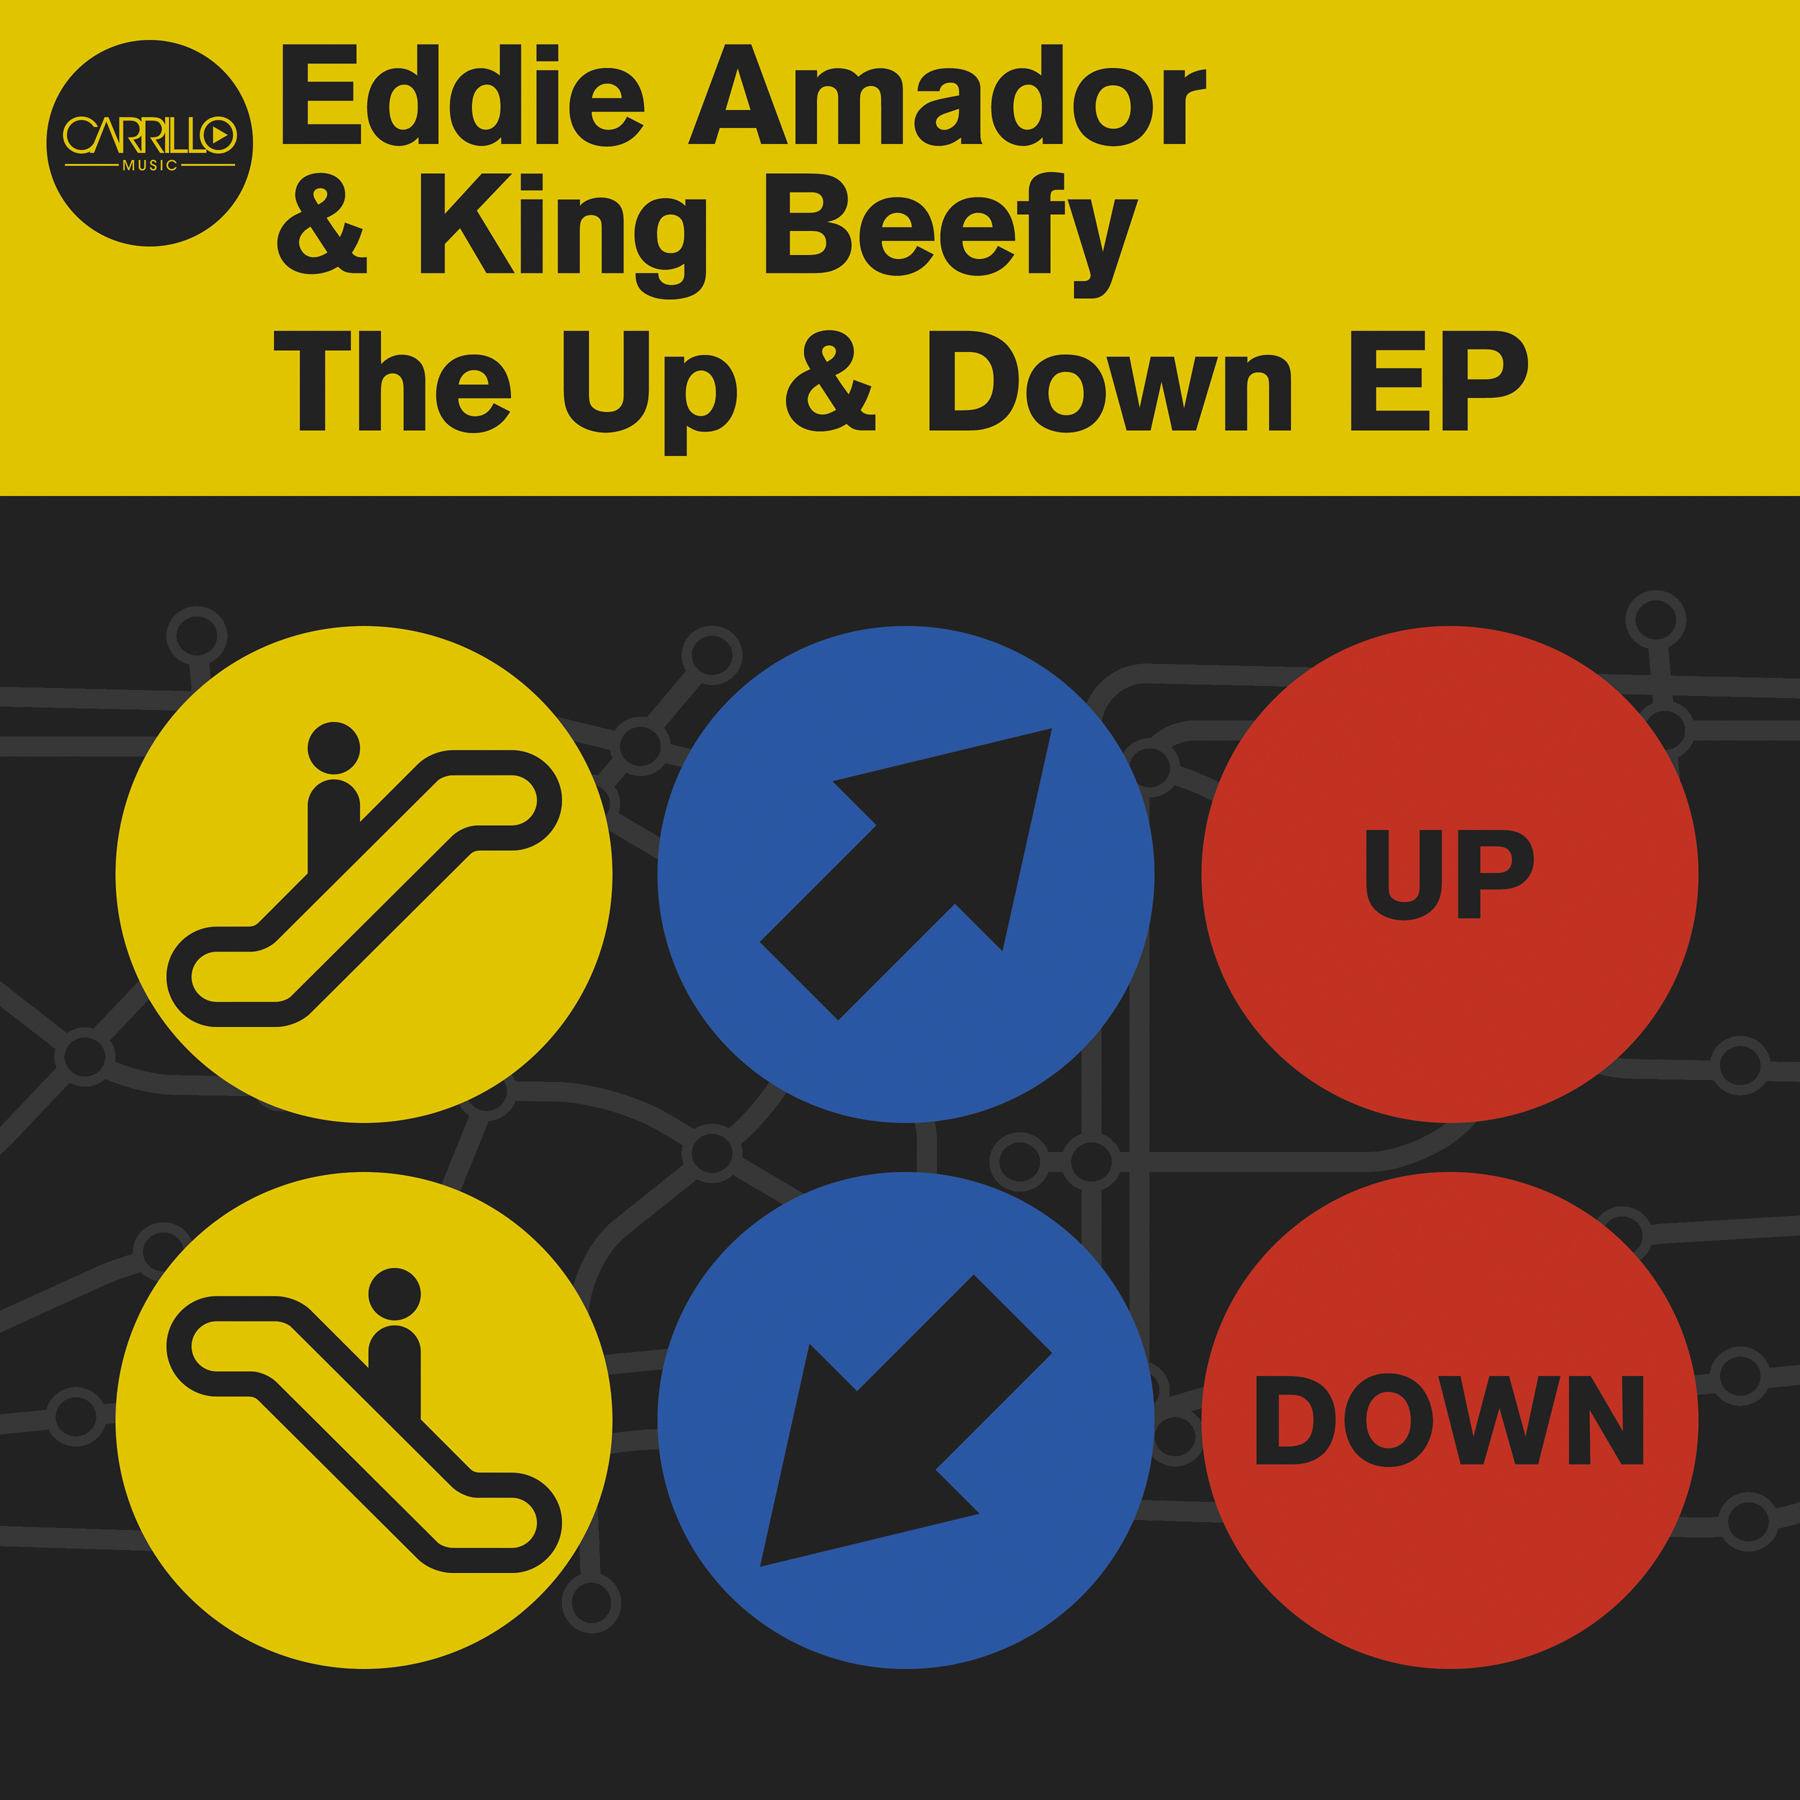 Eddie Amador and King Beefy Up and Down ep-12x12